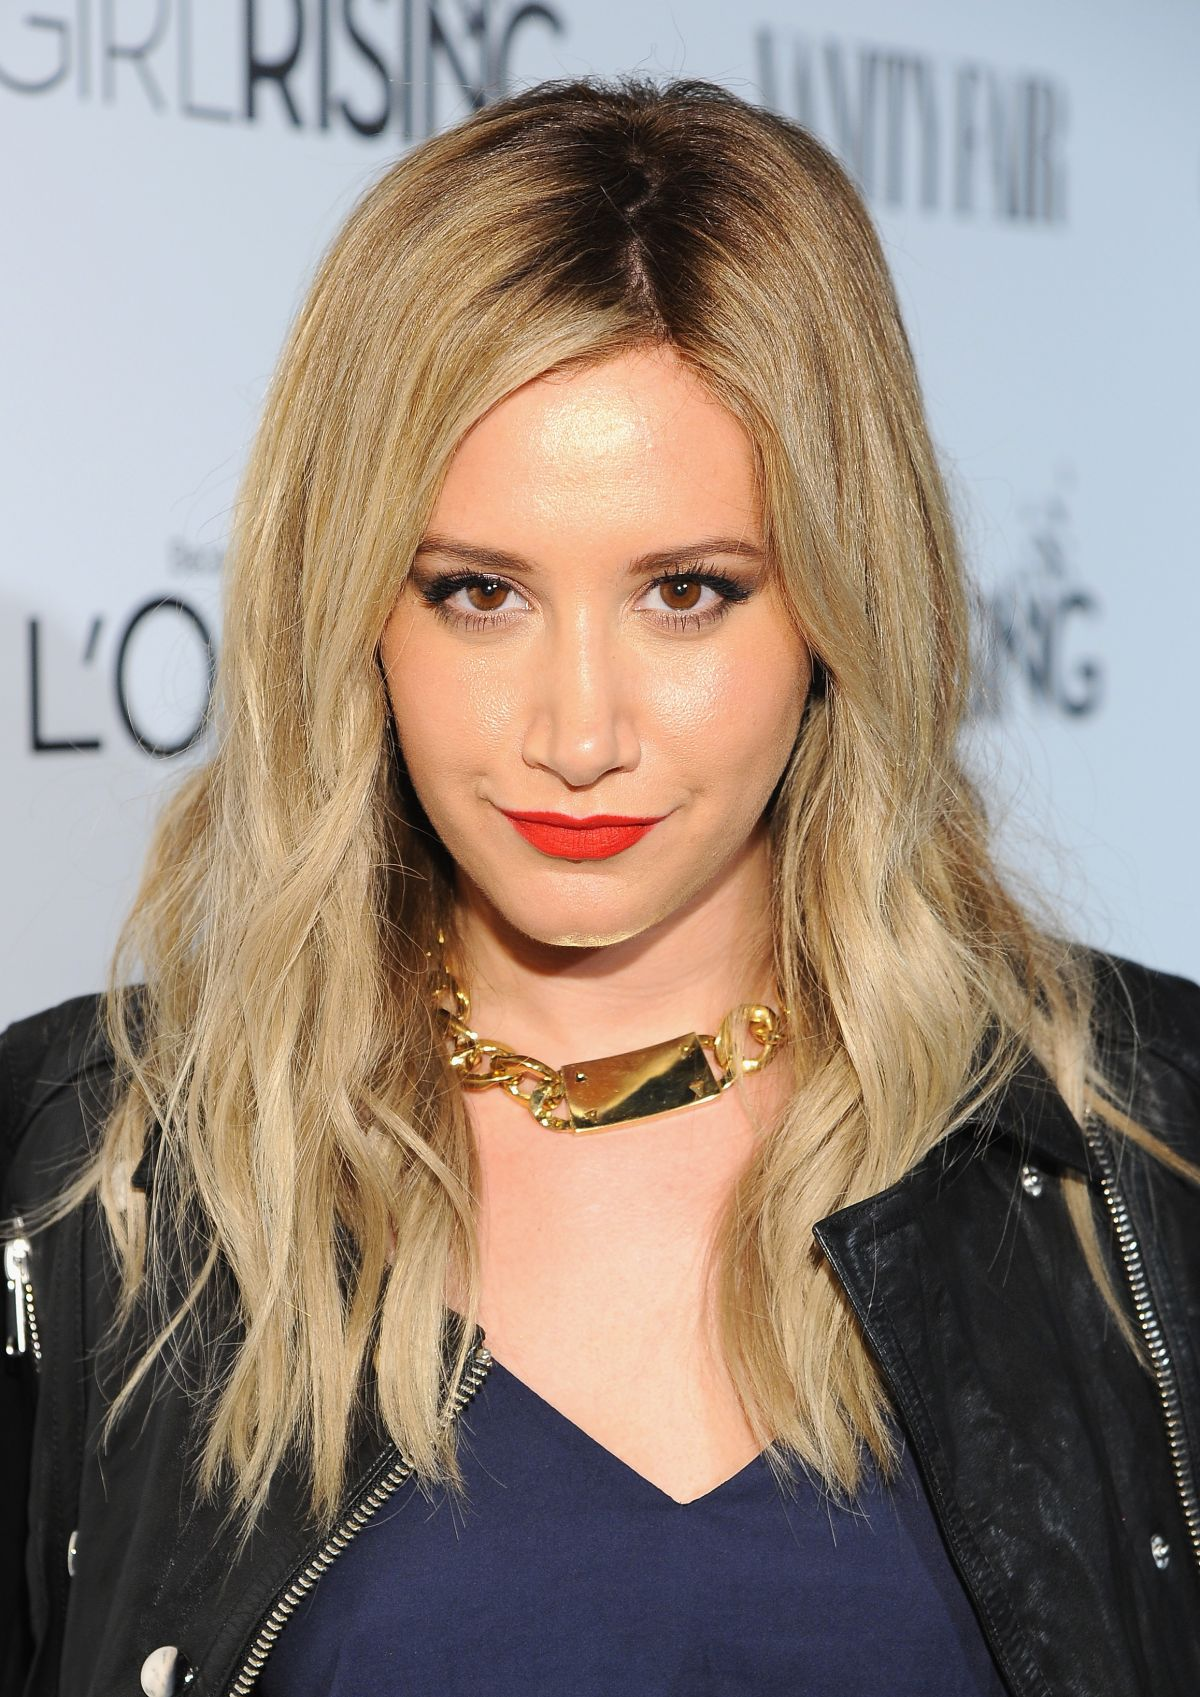 ASHLEY TISDALE at Vanity Fair and L'Oreal Paris D.J. Night Benefit in Los Angeles